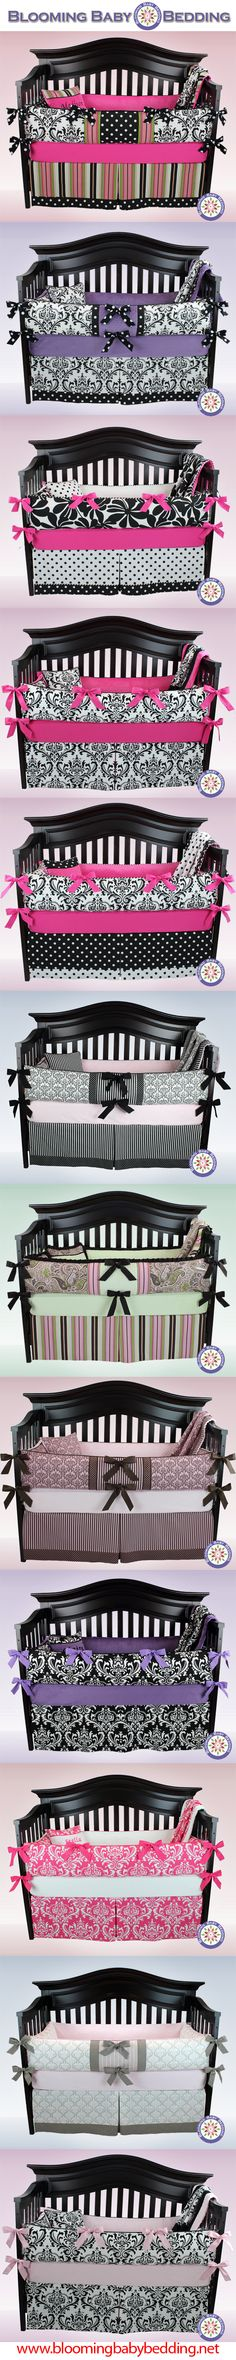 Baby Bedding - Crib Bedding - Baby Girl Bedding Love all these think just pink and white bedding will go with her nursery design Baby Girl Bedding, Baby Bedroom, Baby Cribs, Crib Bedding, Girl Nursery, White Bedding, Nursery Ideas, Bedding Sets, Baby Rooms